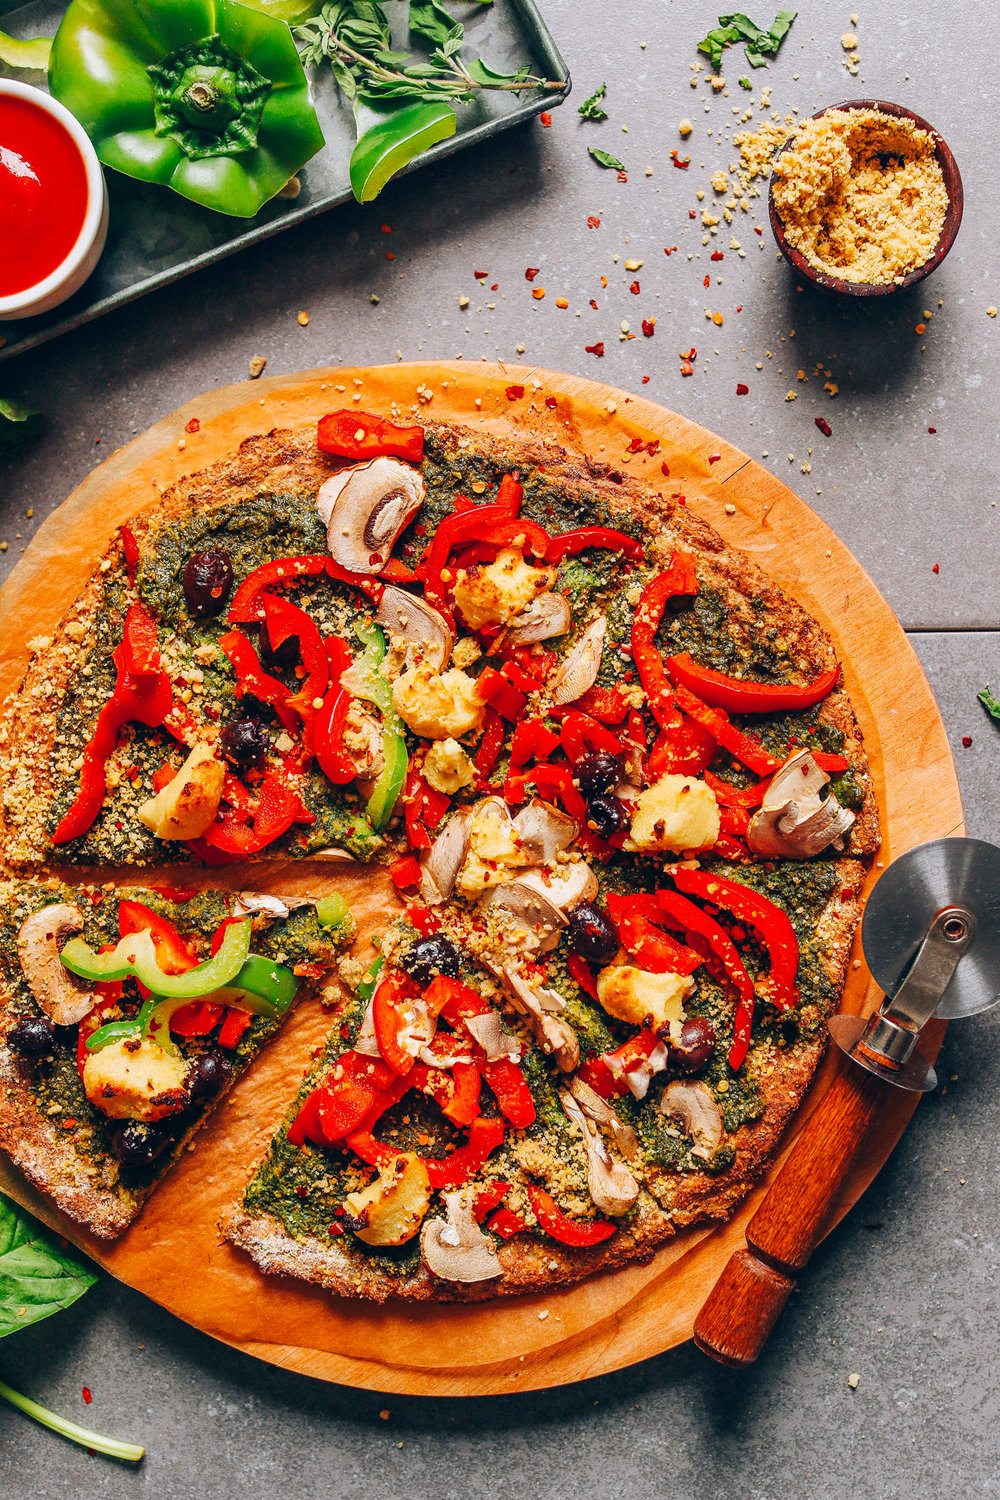 DELICIOUS-Vegan-Gluten-Free-Cauliflower-Pizza-Crust-10-ingredients-simple-methods-crispy-crust-tender-center-vegan-glutenfree-plantbased-pizza-cauliflower-minimalistbaker-recipe6.jpg